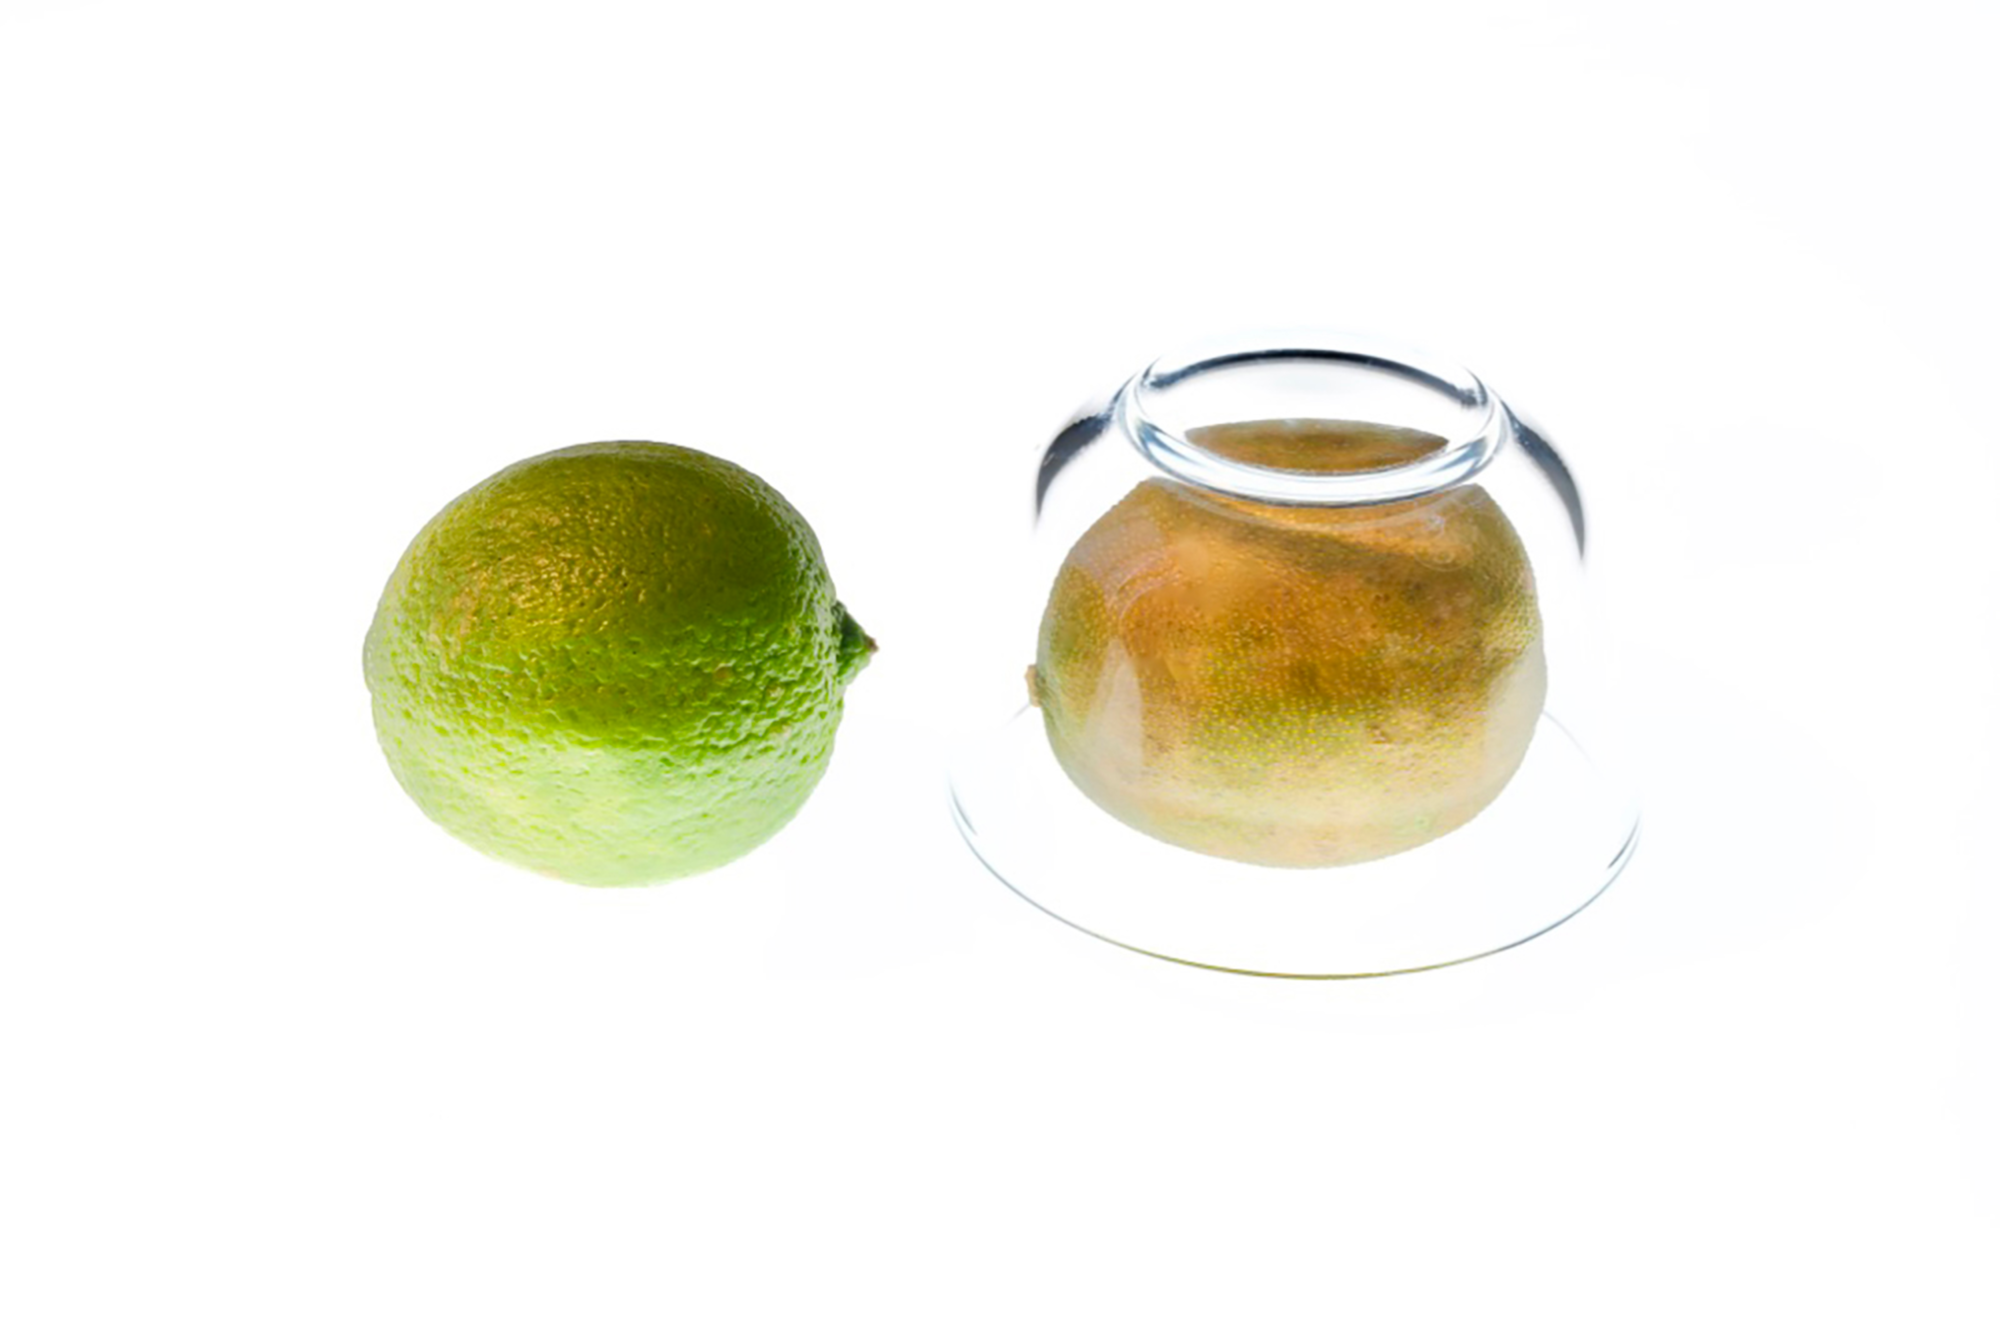 Two limes lie next to each other, one covered with a glass dish and browning.